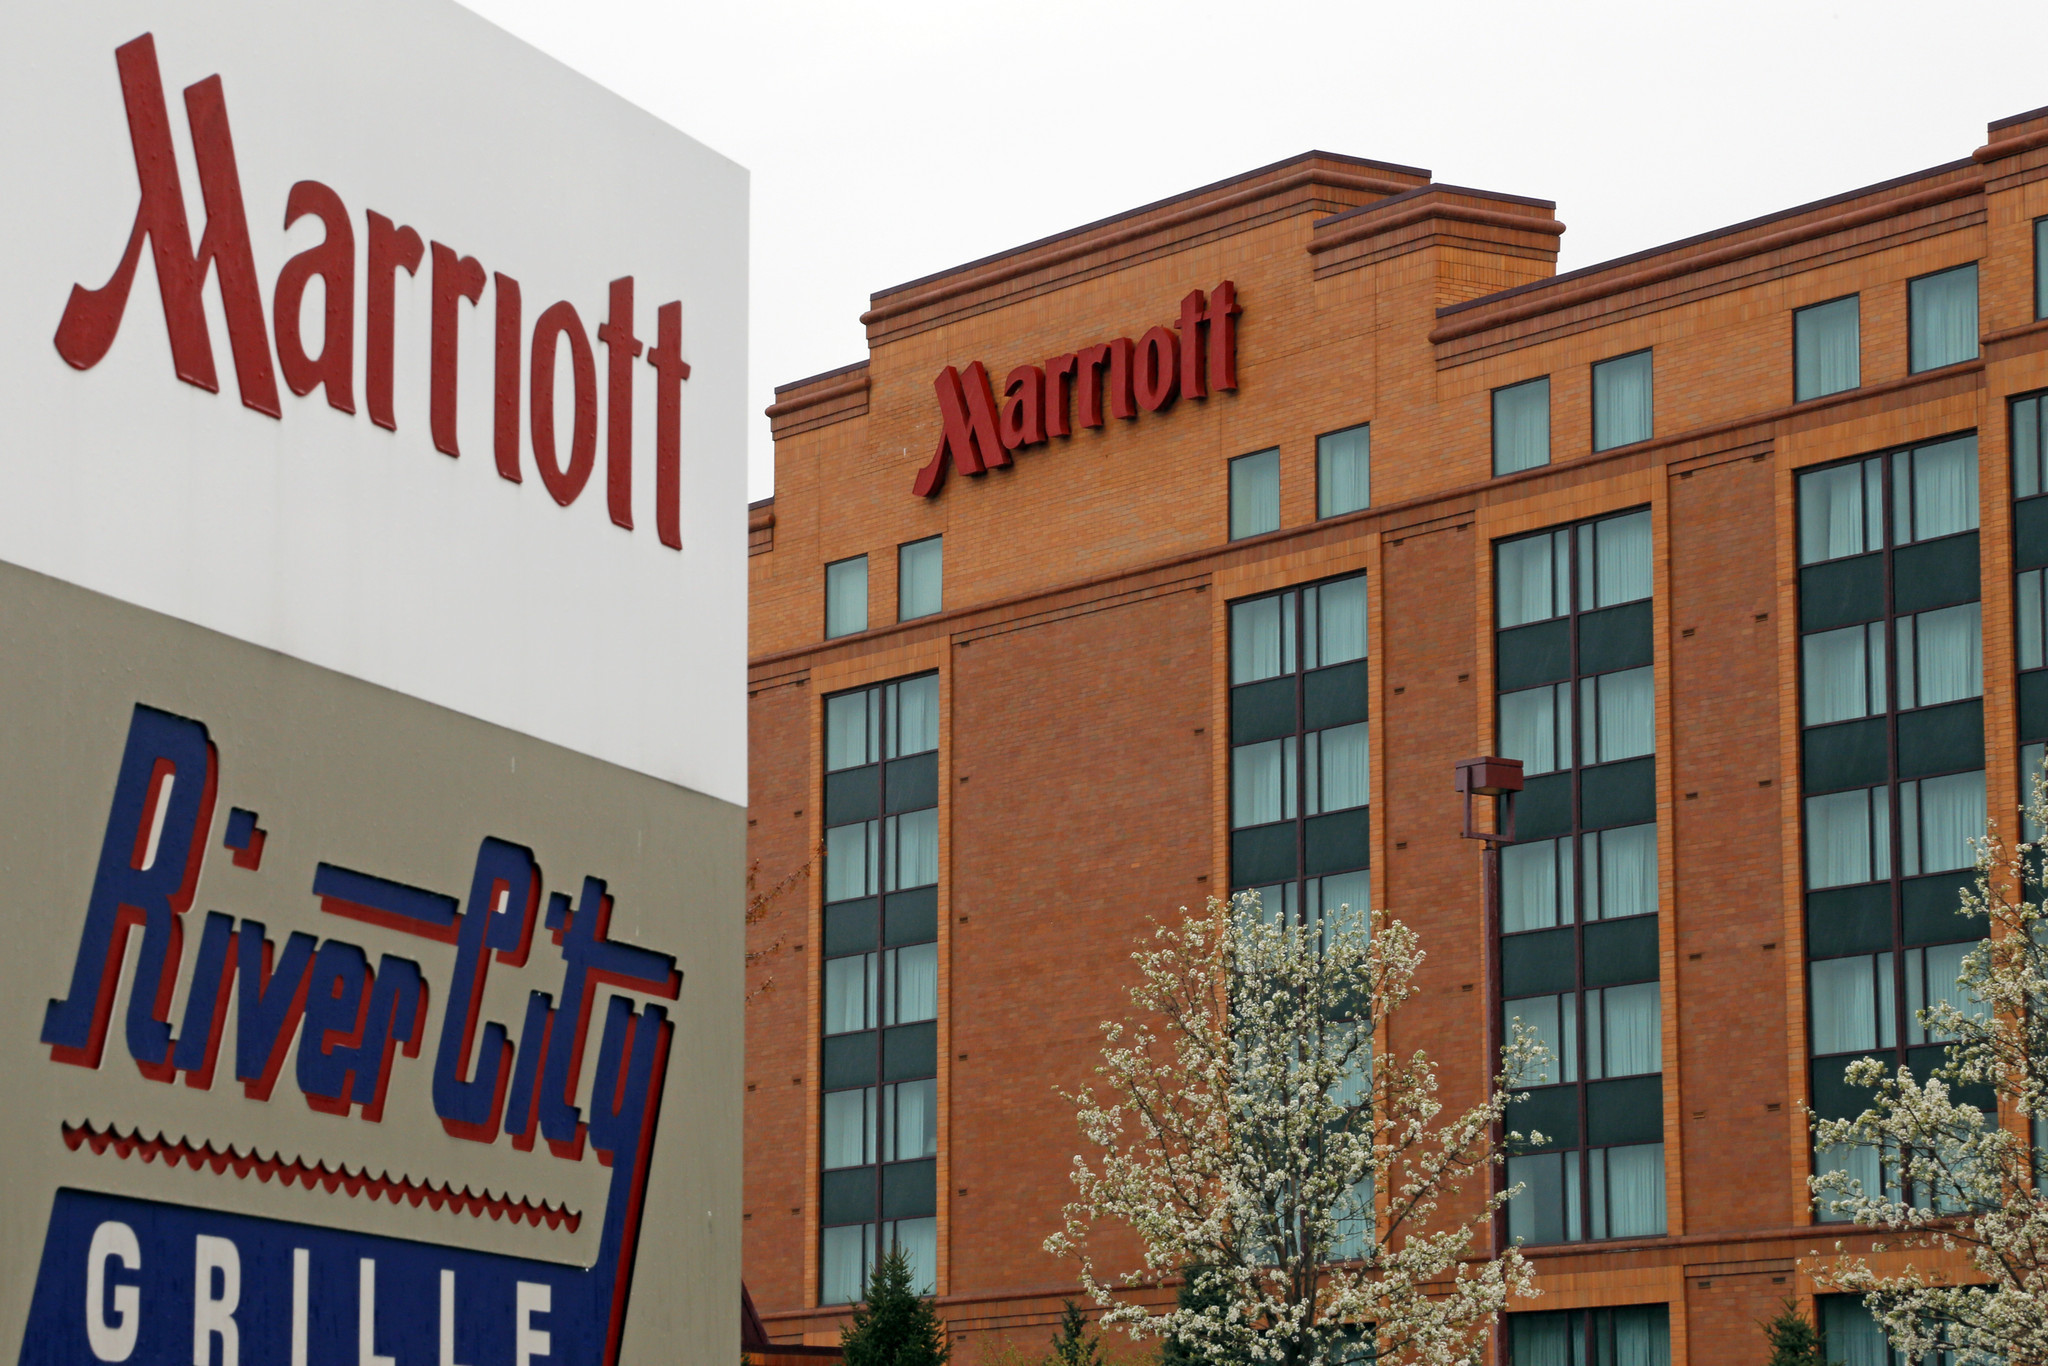 Marriott S Bid For Starwood Challenged In Suit By Hotel Owners Chicago N Y Tribune